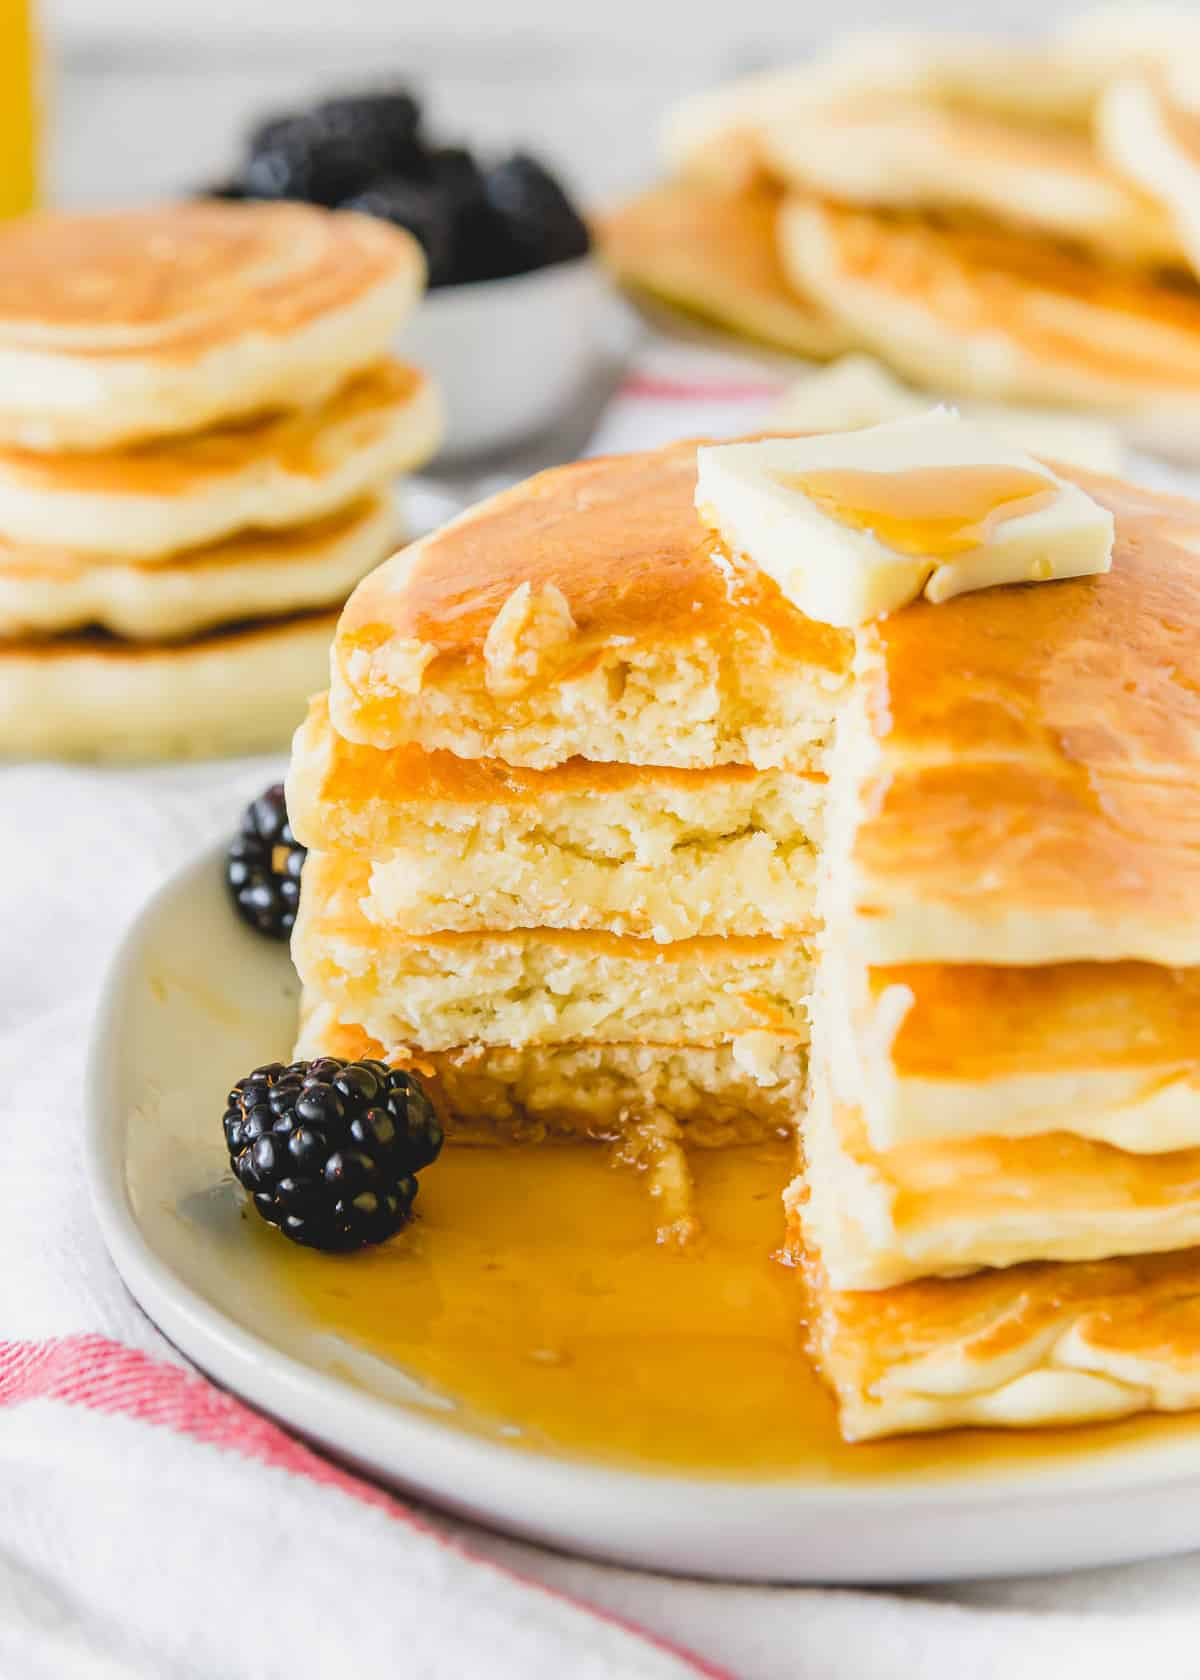 Stack of pancakes, cut to show texture.